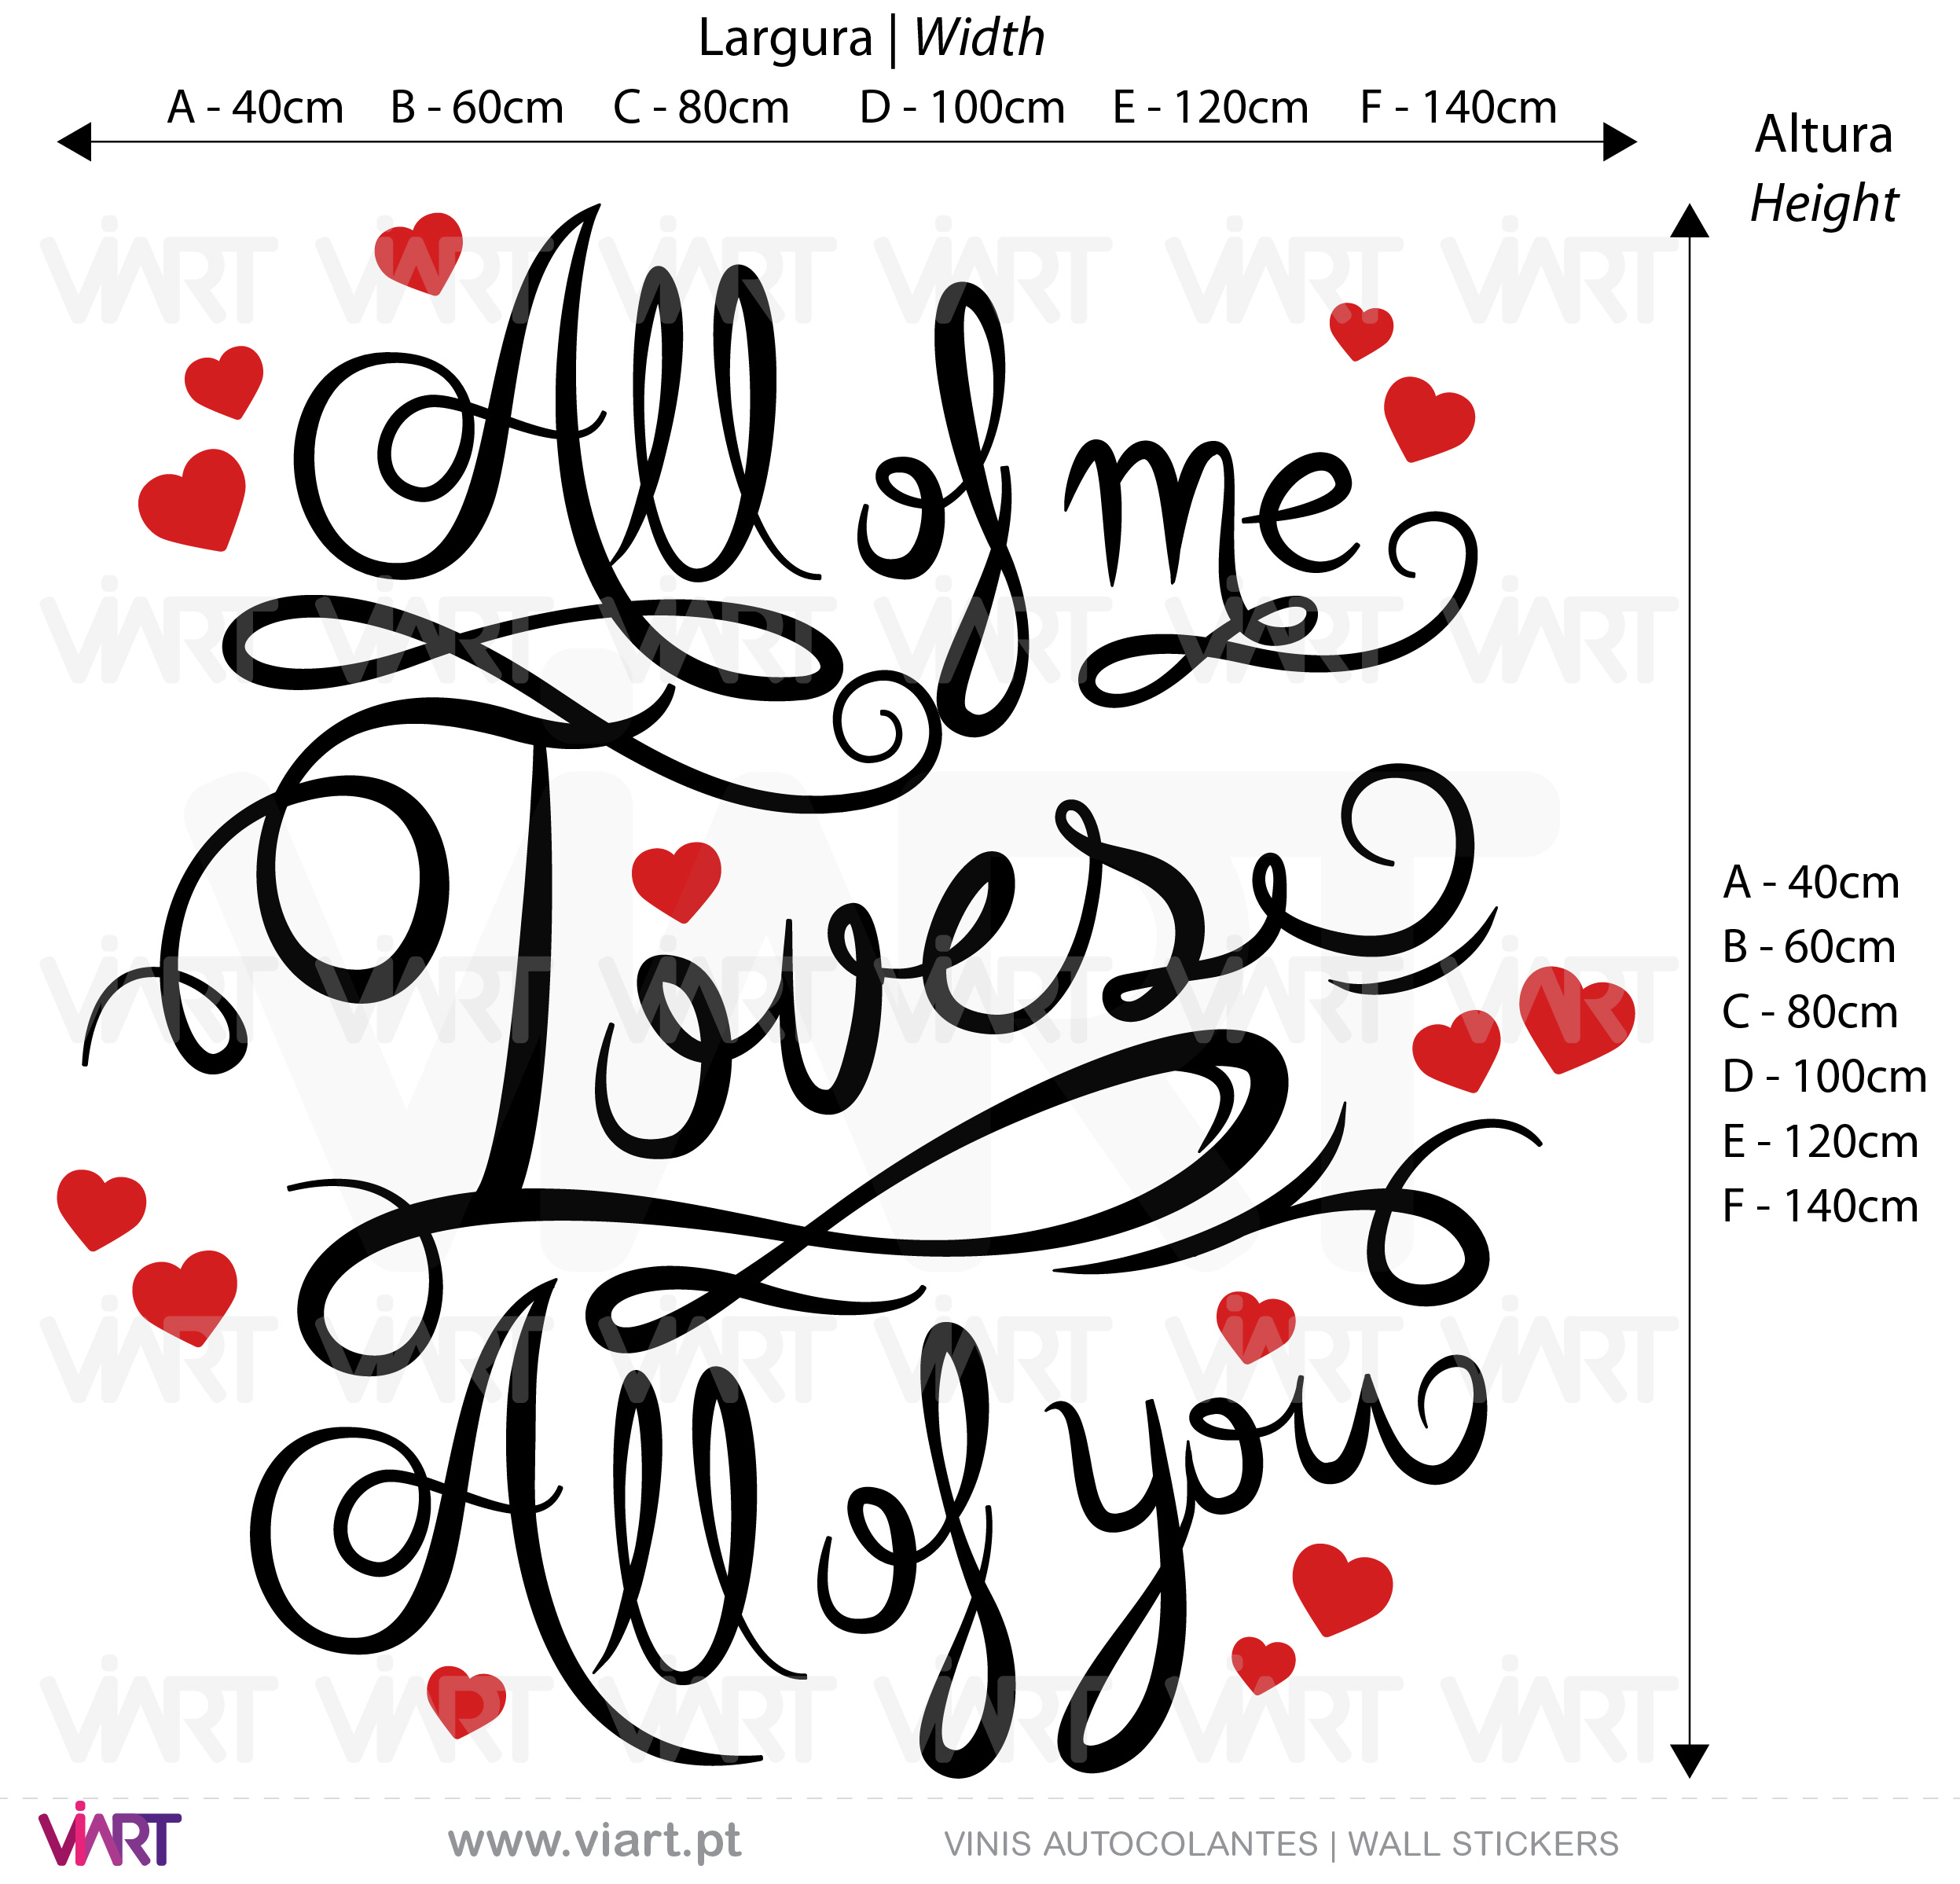 All of me Loves All of you! Viart - Vinis Autocolantes decorativos. Decoração adesivos.